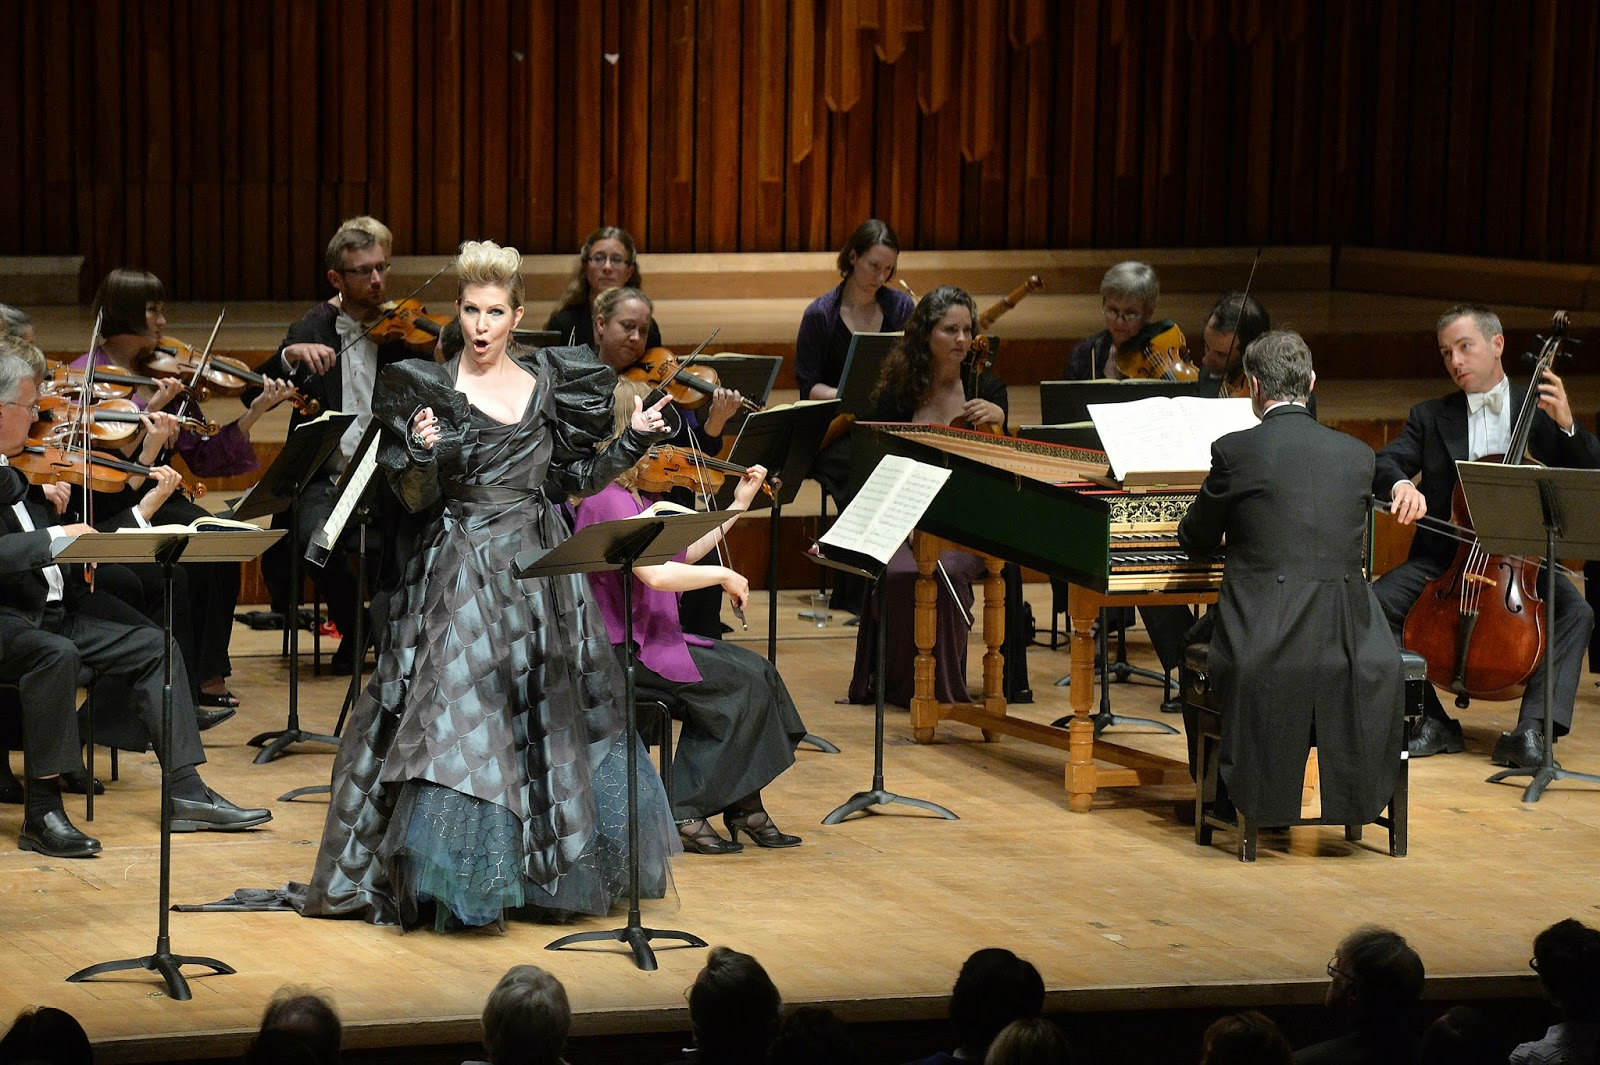 Joyce Di Donato in Act 1 of Handel's Alcina  with Harry Bicket and the English Concert photo credit Mark Allan/Barbican